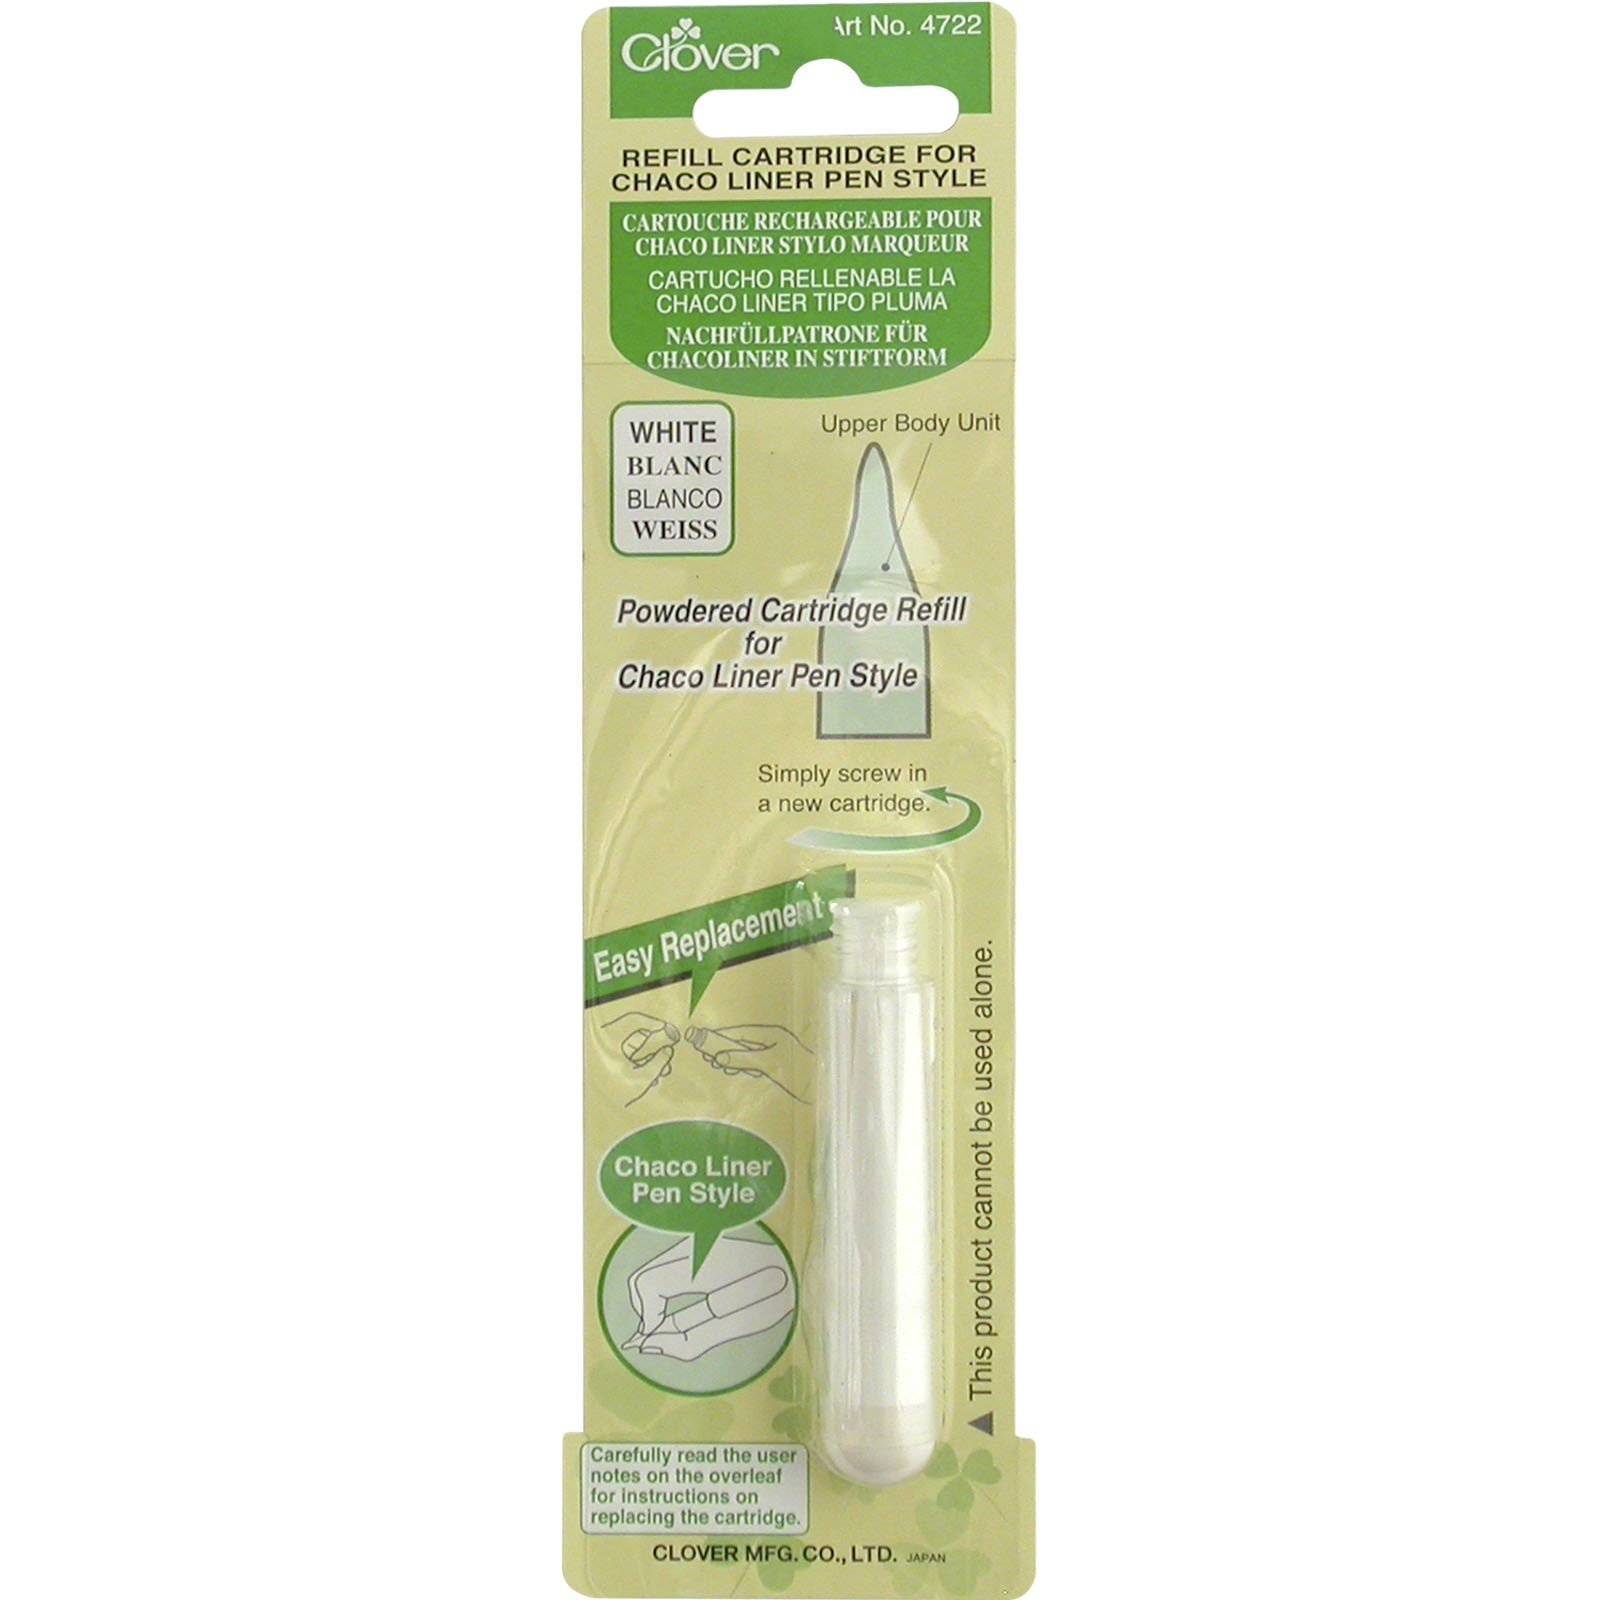 Chaco Liner Pen Style - Refill